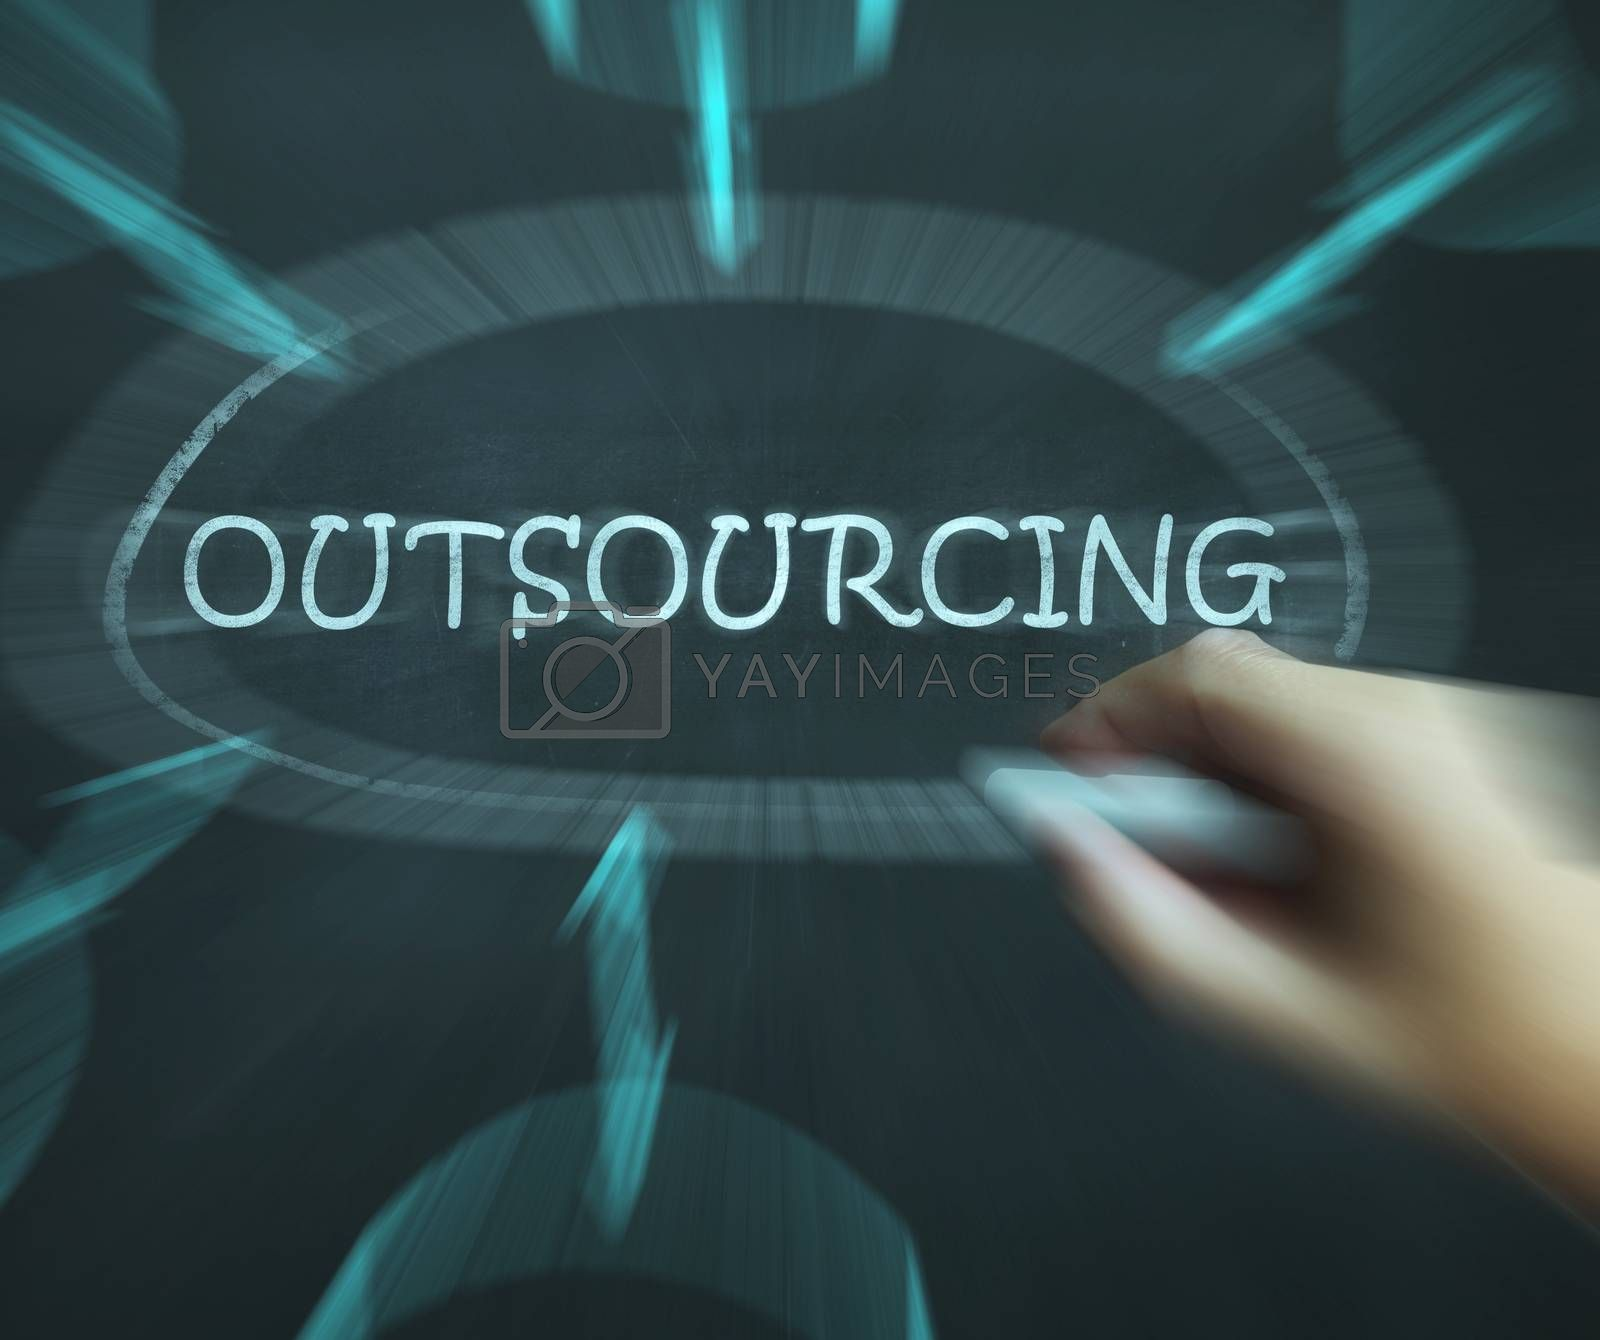 Outsourcing Diagram Means Freelance Workers And Contractors by stuartmiles